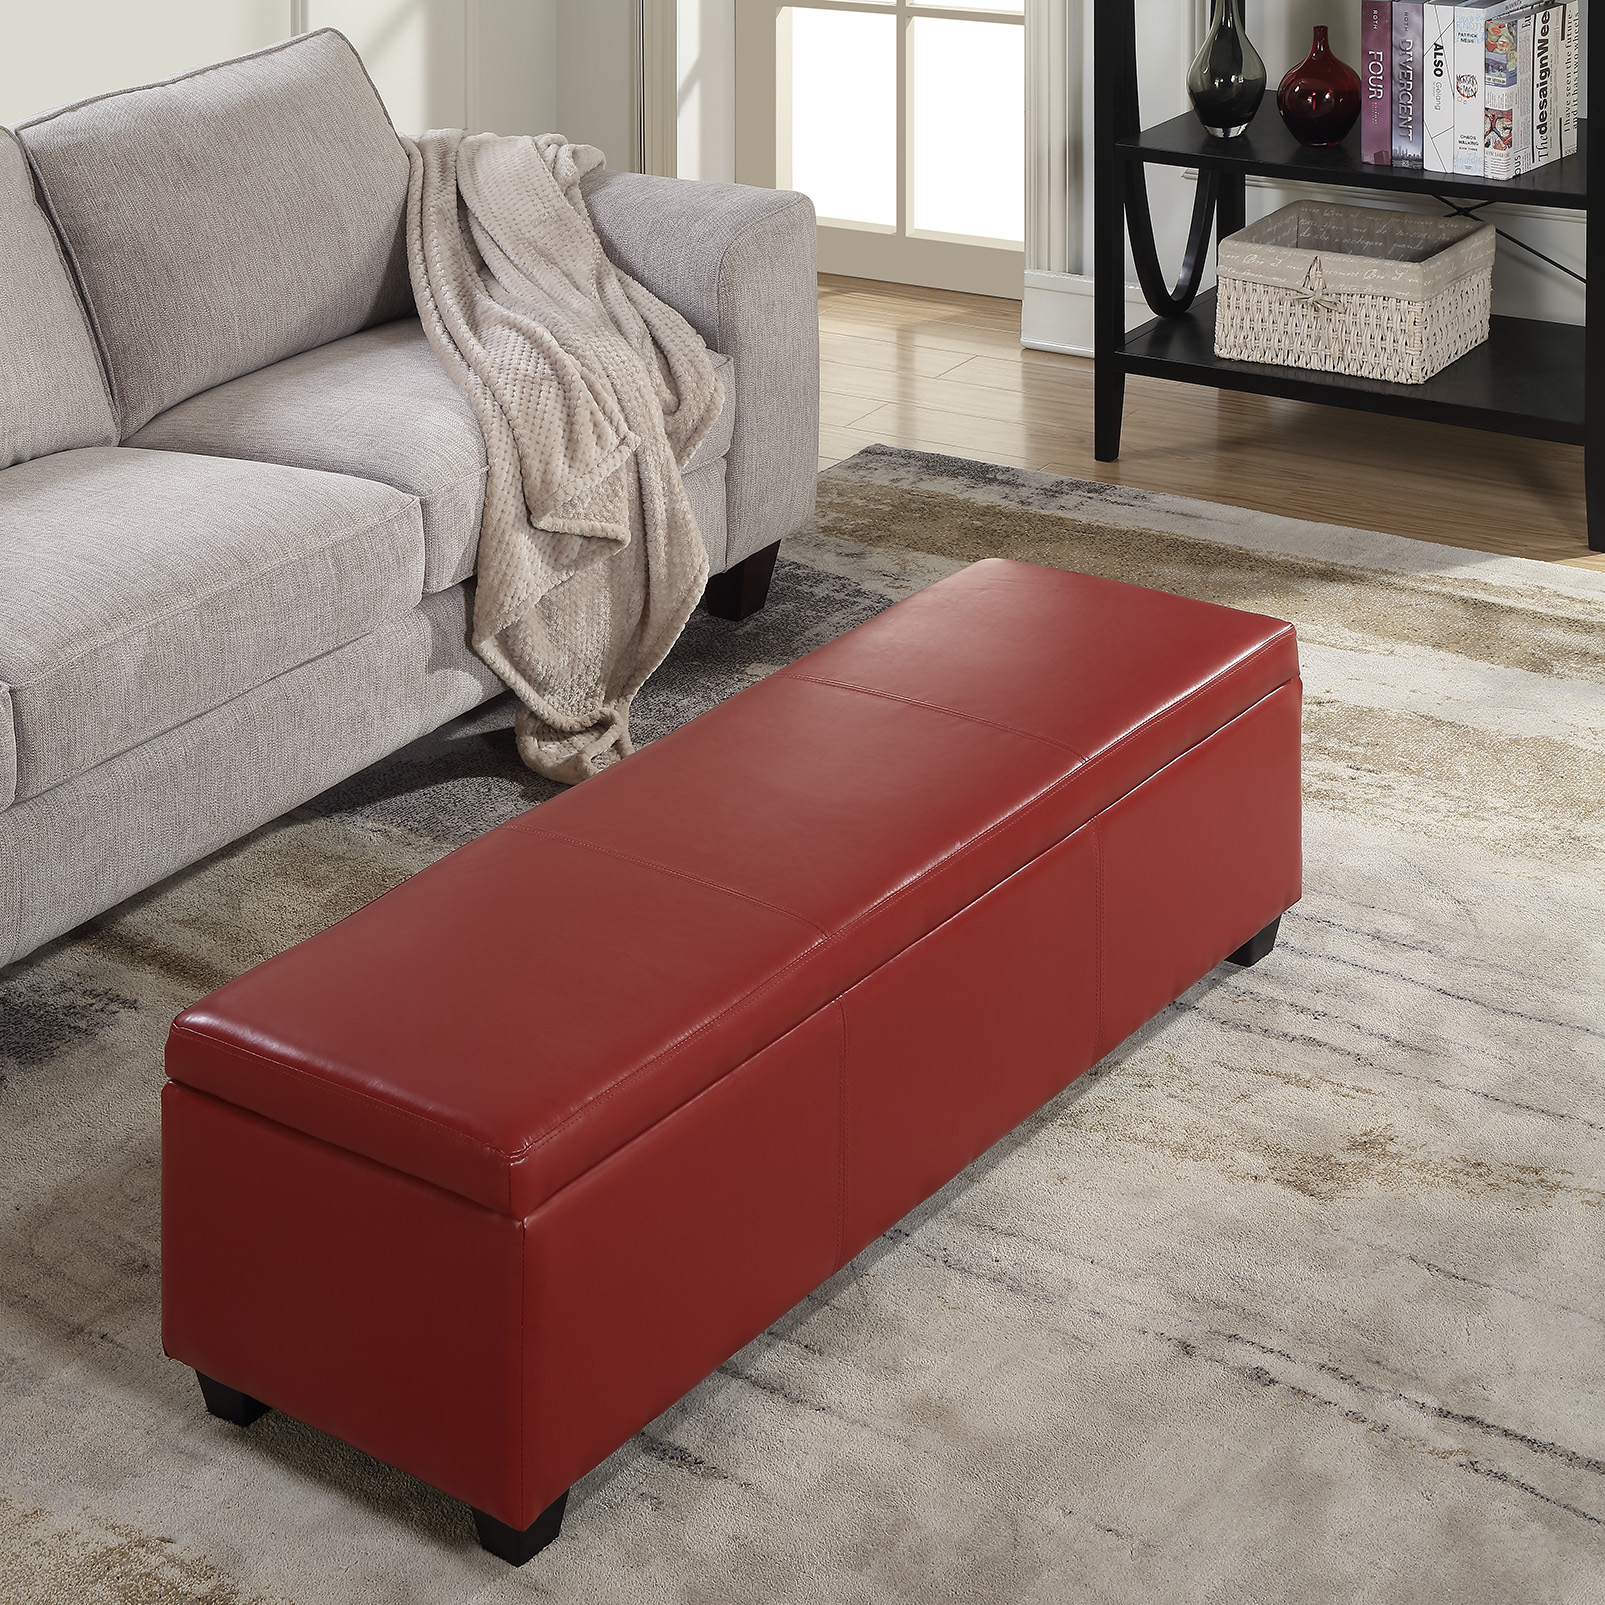 Marvelous Details About 48 Inch Deluxe Bedroom Rectangular Faux Leather Storage Ottoman Bench Large Red Pdpeps Interior Chair Design Pdpepsorg